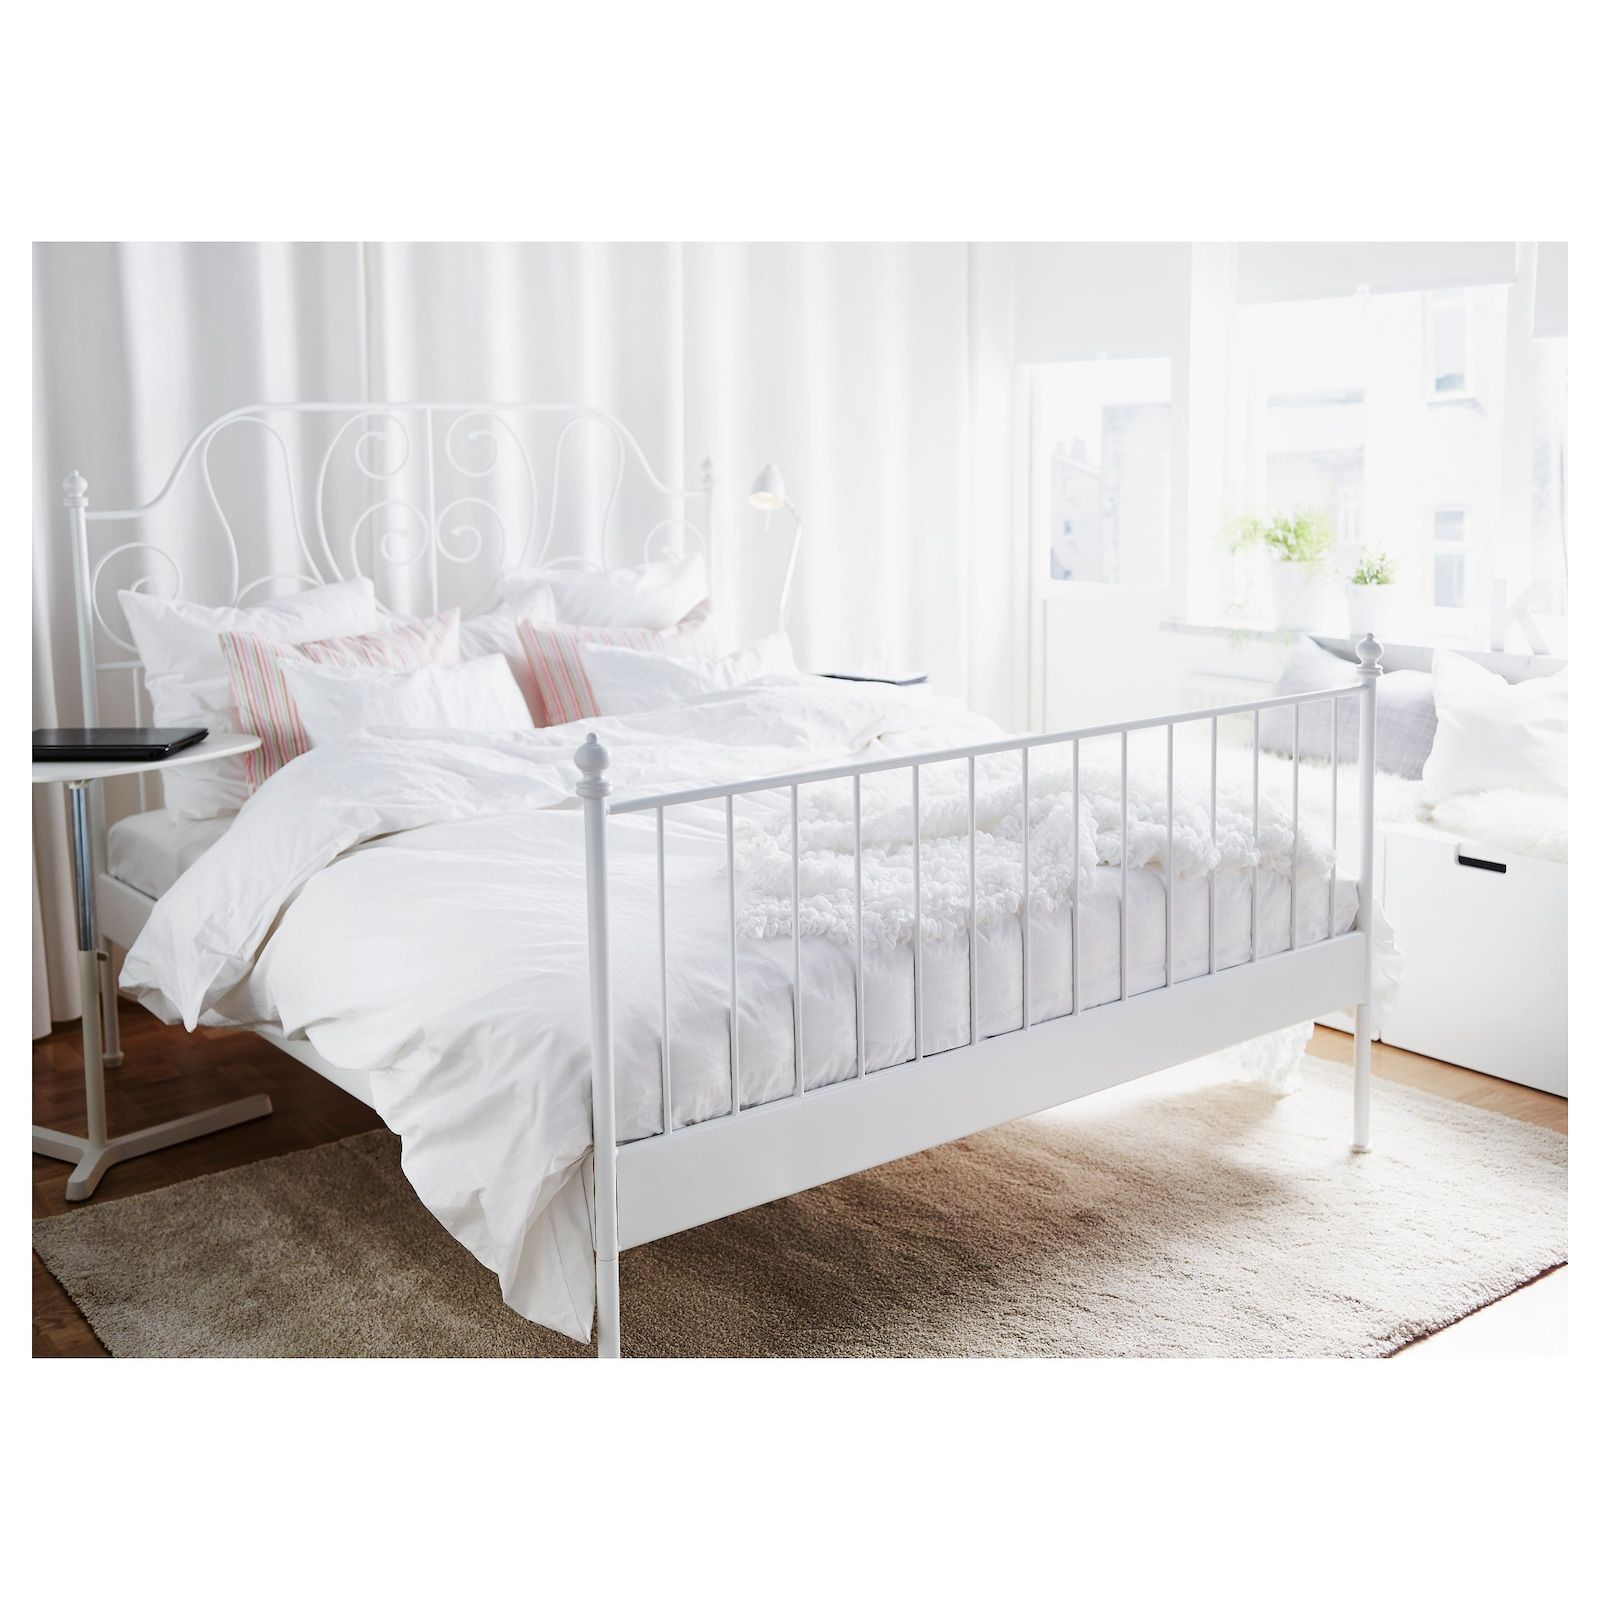 LEIRVIK Bed frame, white, Full IKEA in 2020 White bed